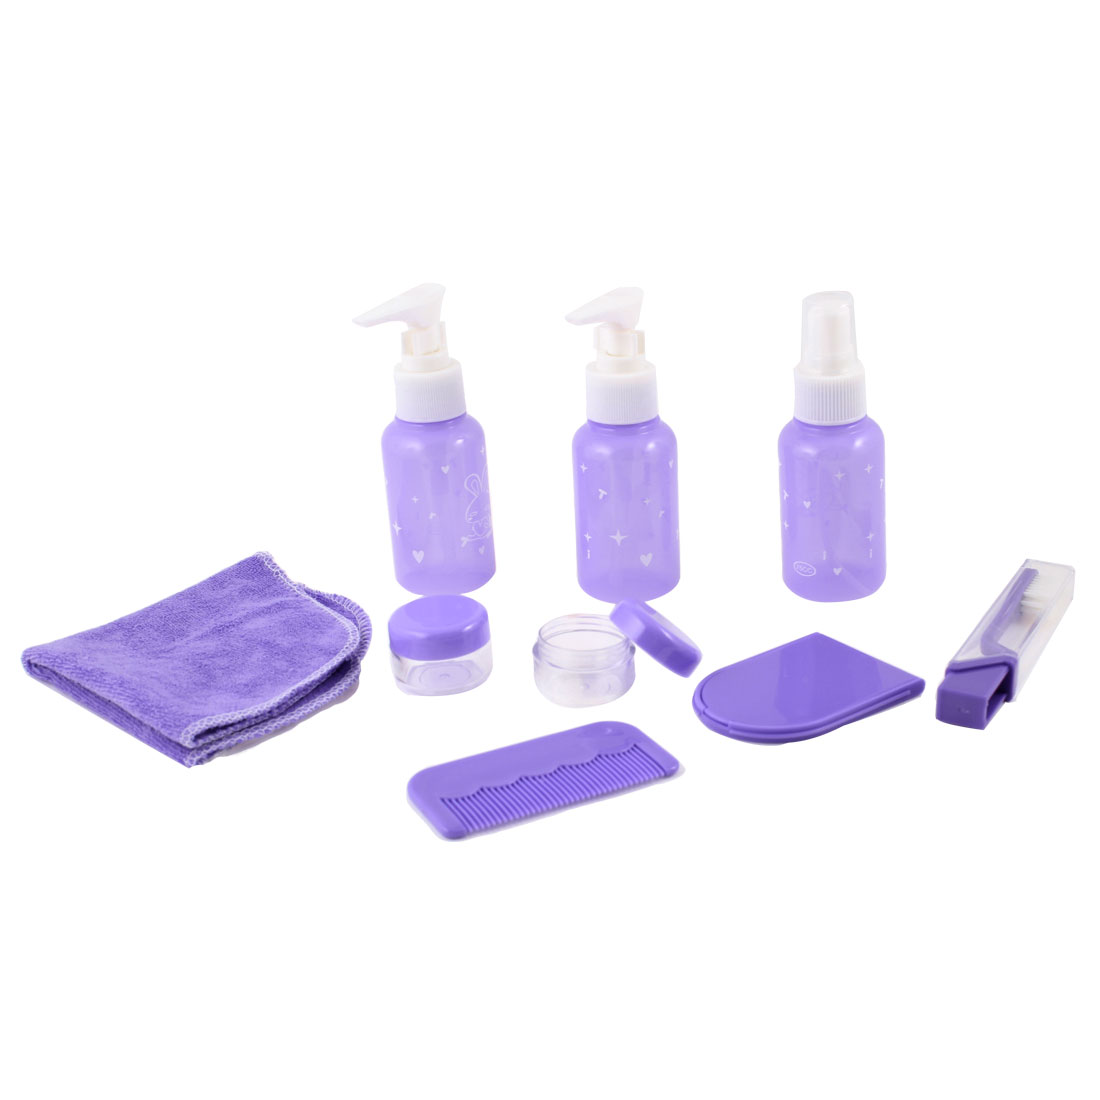 Purple Traveling Spray Mist Bottle Cream Box Comb Towel Toothbrush 9 in 1